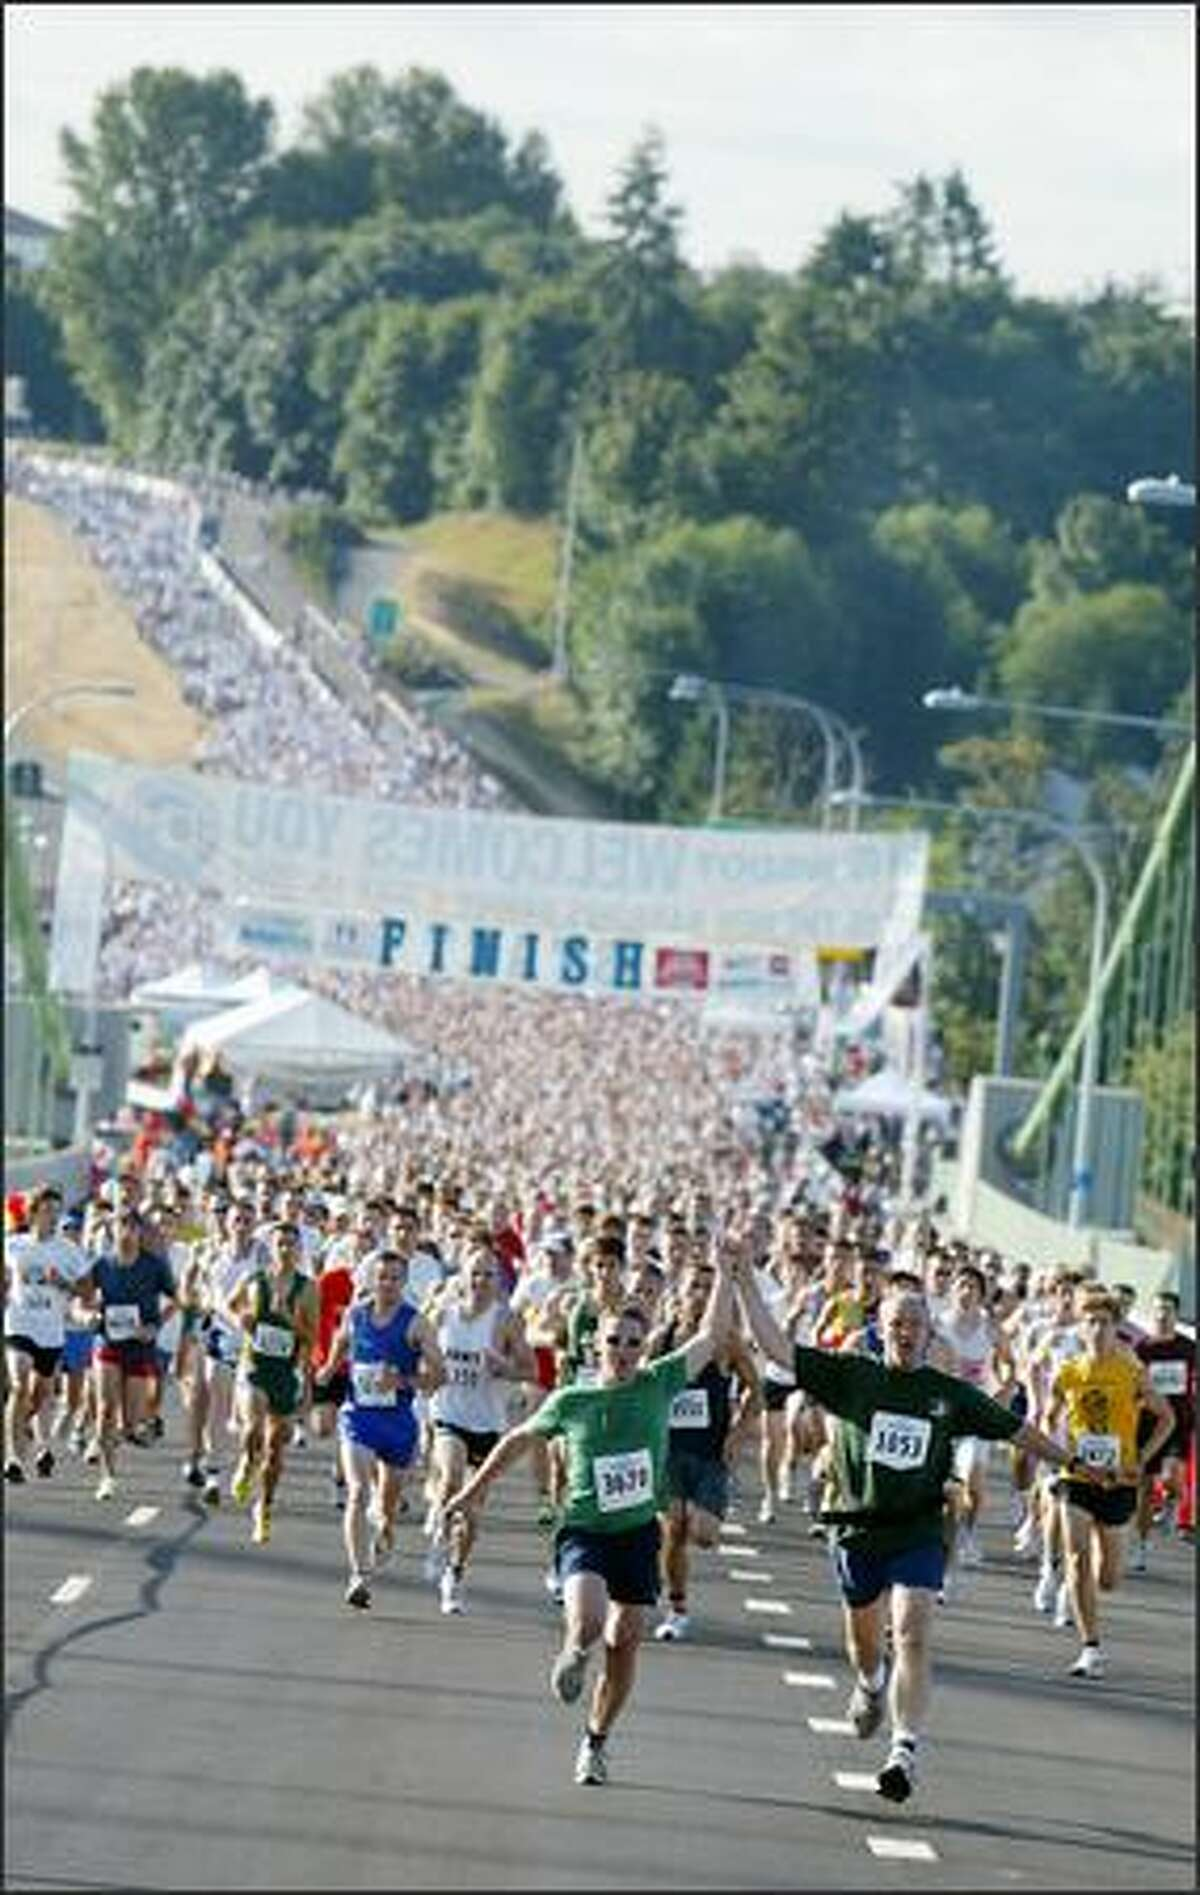 A 5K run started the day-long dedication celebration of the new Tacoma Narrows Bridge on Sunday.